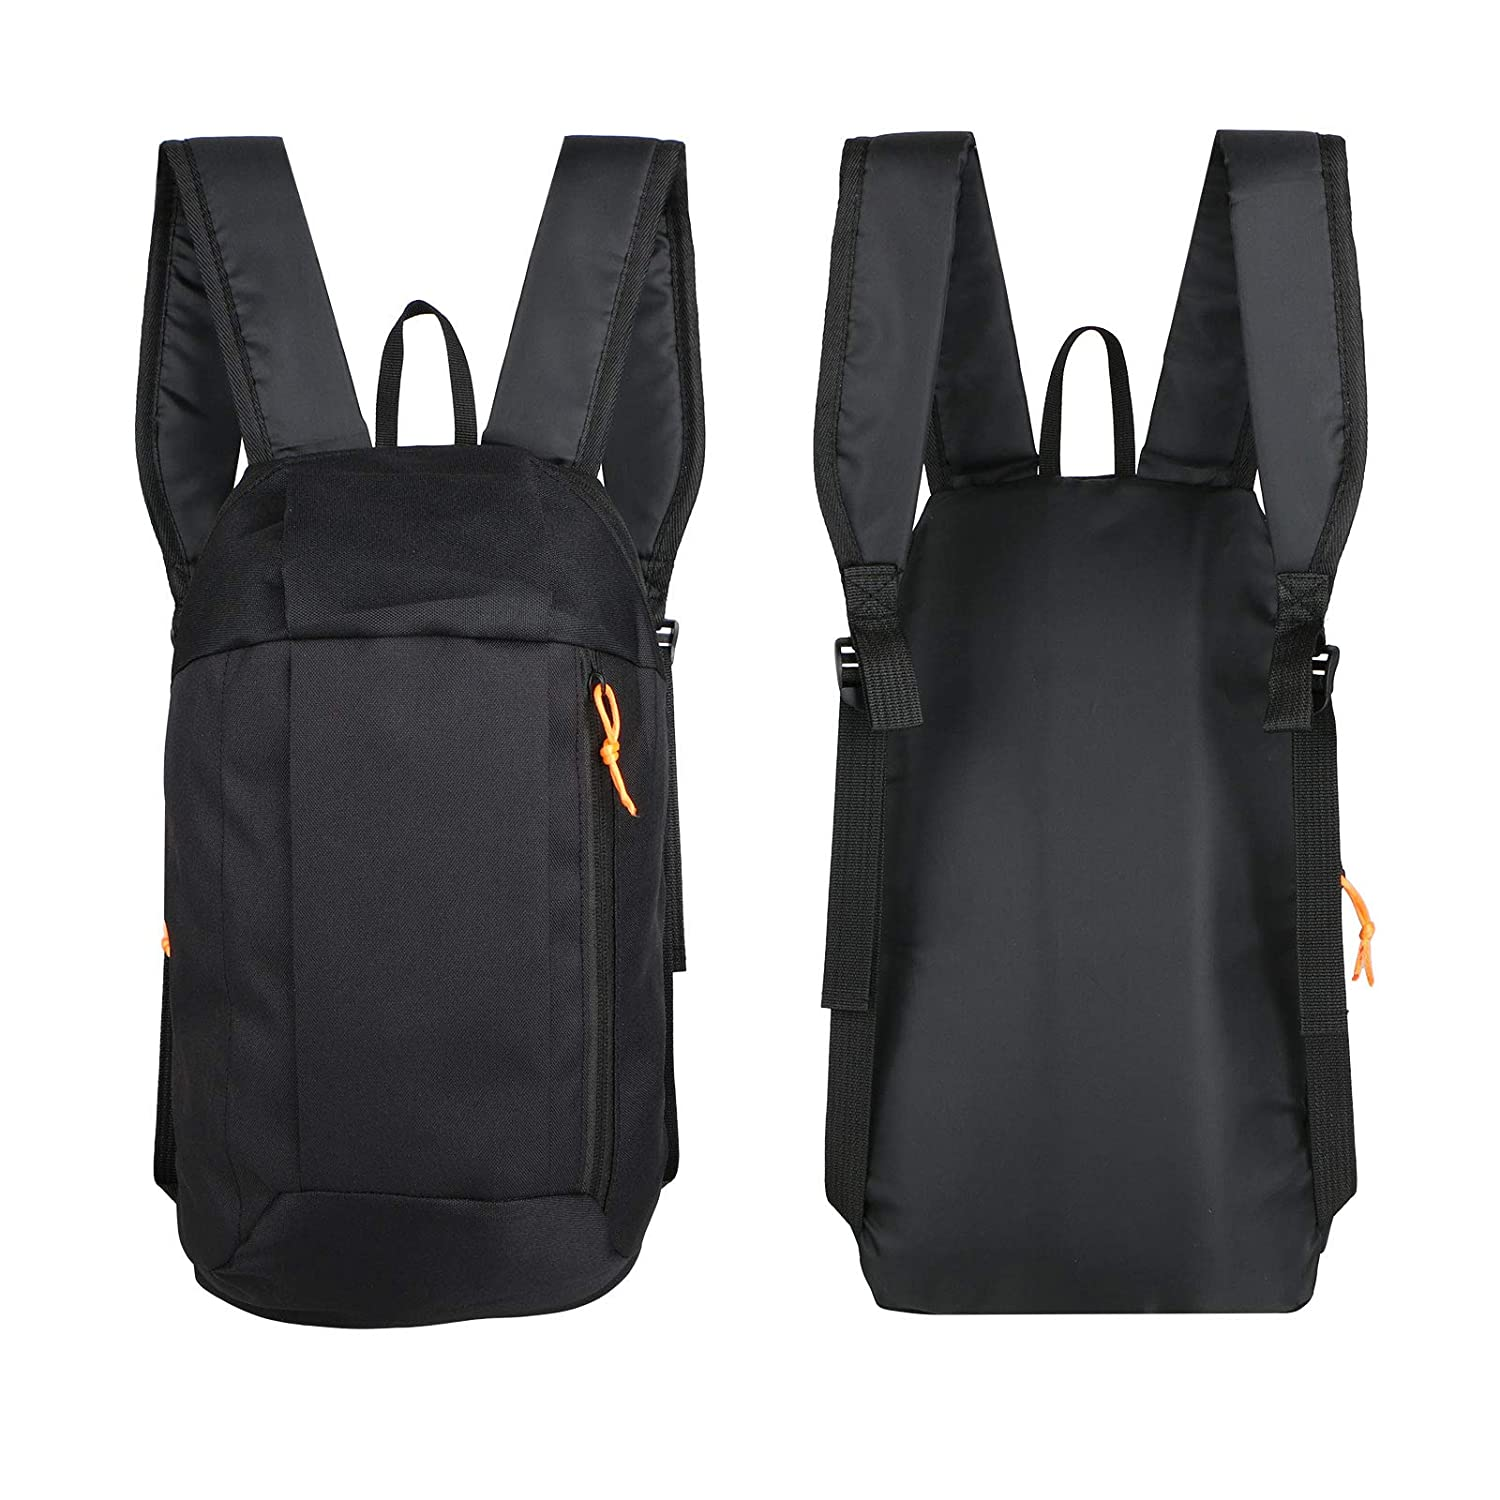 5b774ca3b1e0 Amazon.com: EEEKit Men Women Unisex Lightweight Sports Backpack ...